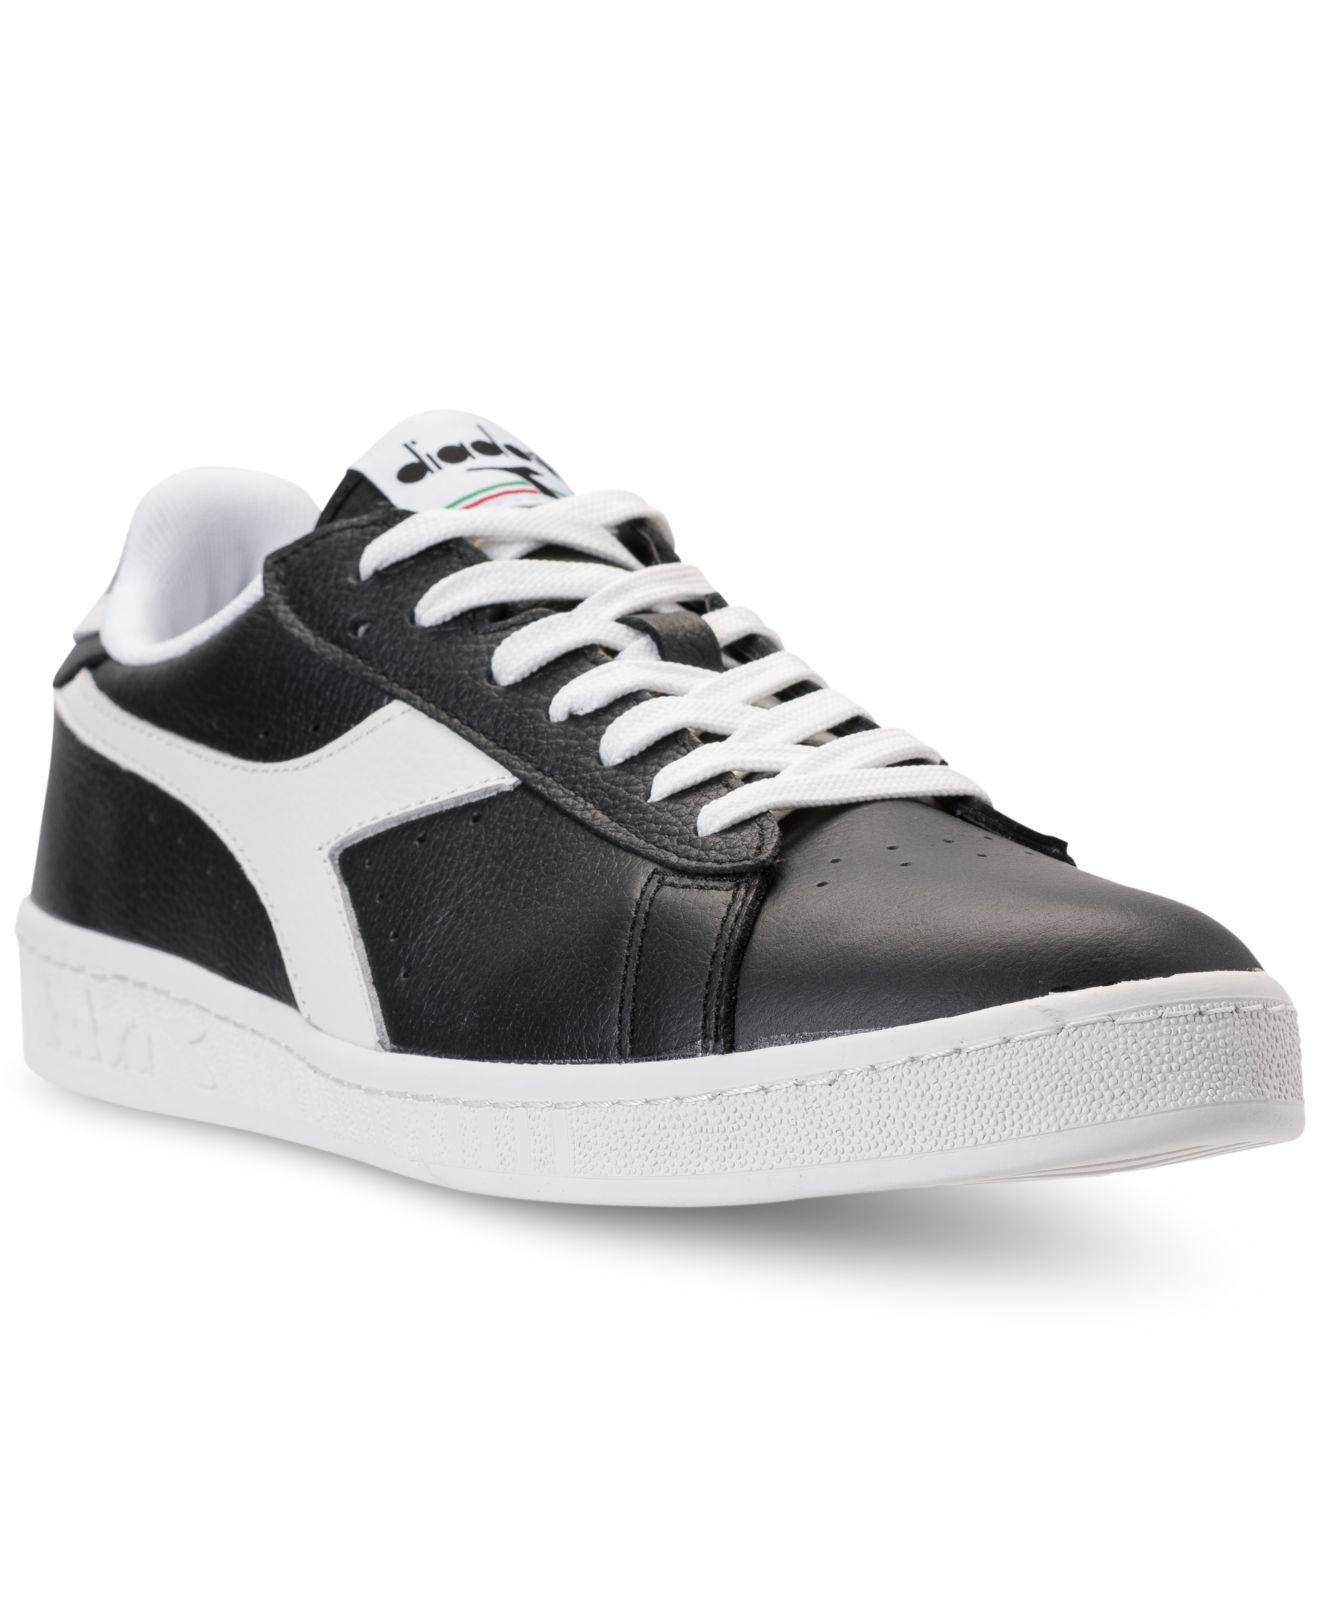 e9dae387a8 Lyst - Diadora Men's Game L Low Waxed Casual Sneakers From Finish ...